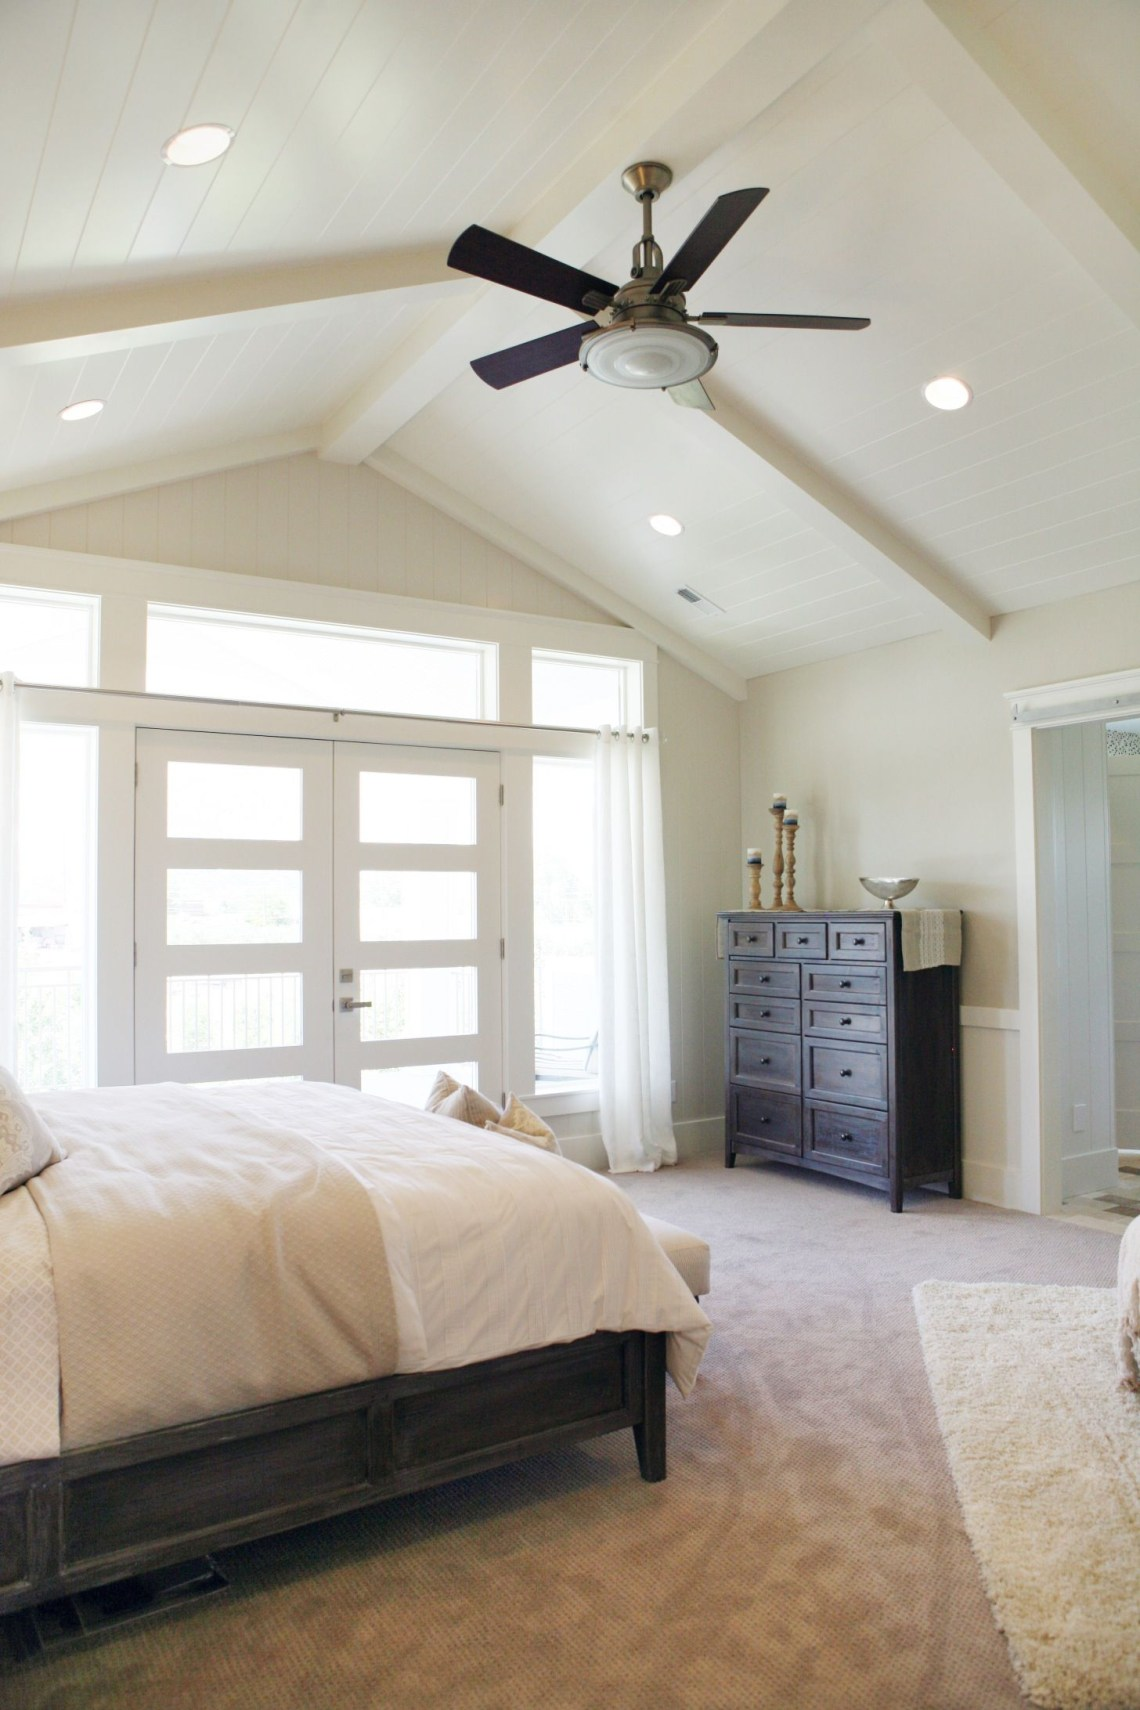 Master Bedroom High Ceiling Bright Windows And A Fan